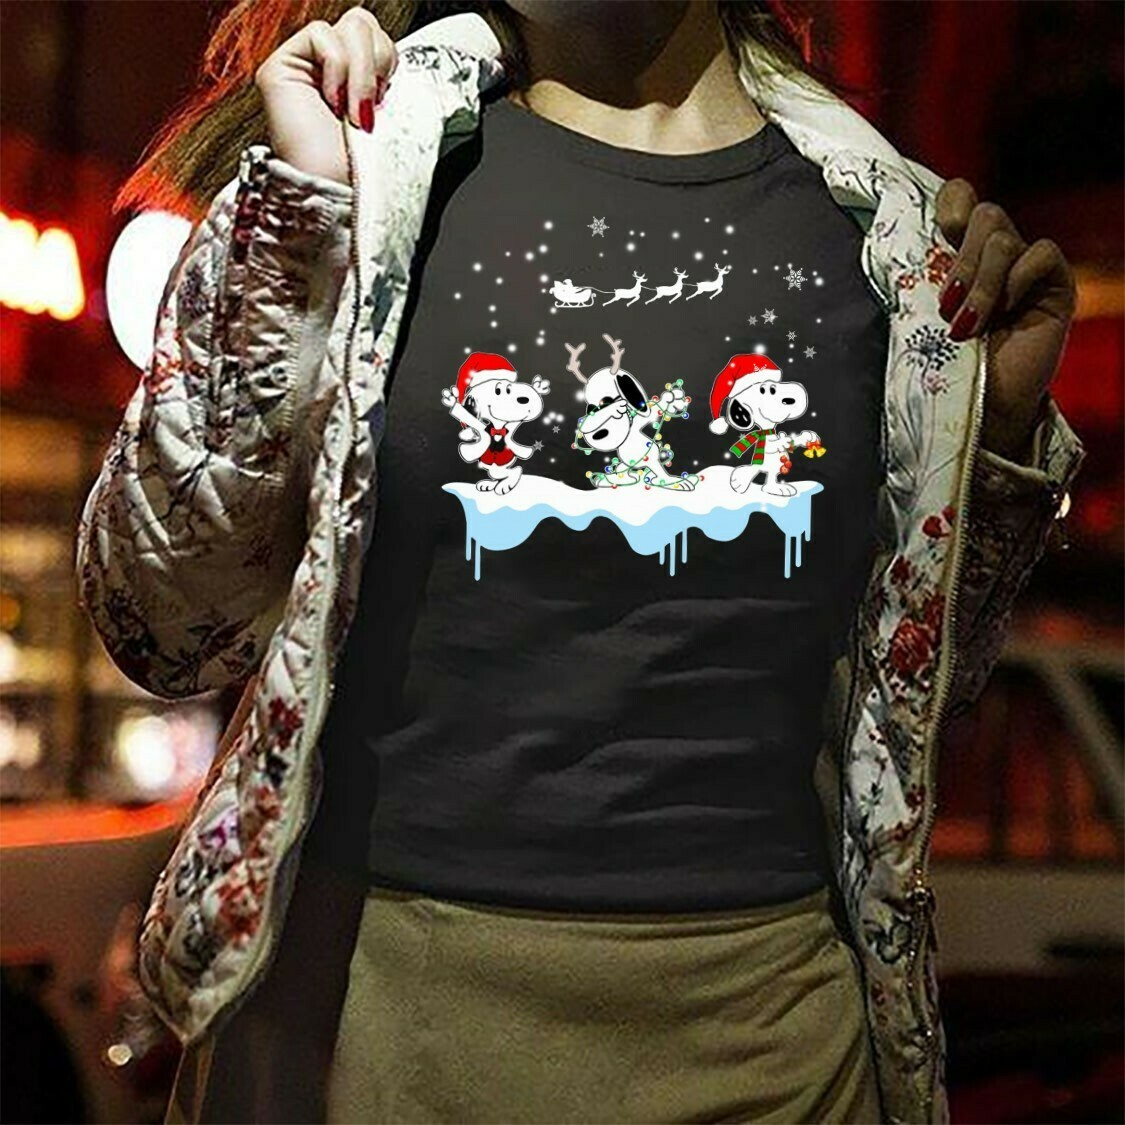 Snoopy And Friends Snoopy Christmas,Snoopy Woodstock Charlie Brown Snowman Xmas Tree Merry Christmas 2019 Gifts Noel Family Party T-Shirt Long Sleeve Sweatshirt Hoodie Jolly Family Gifts